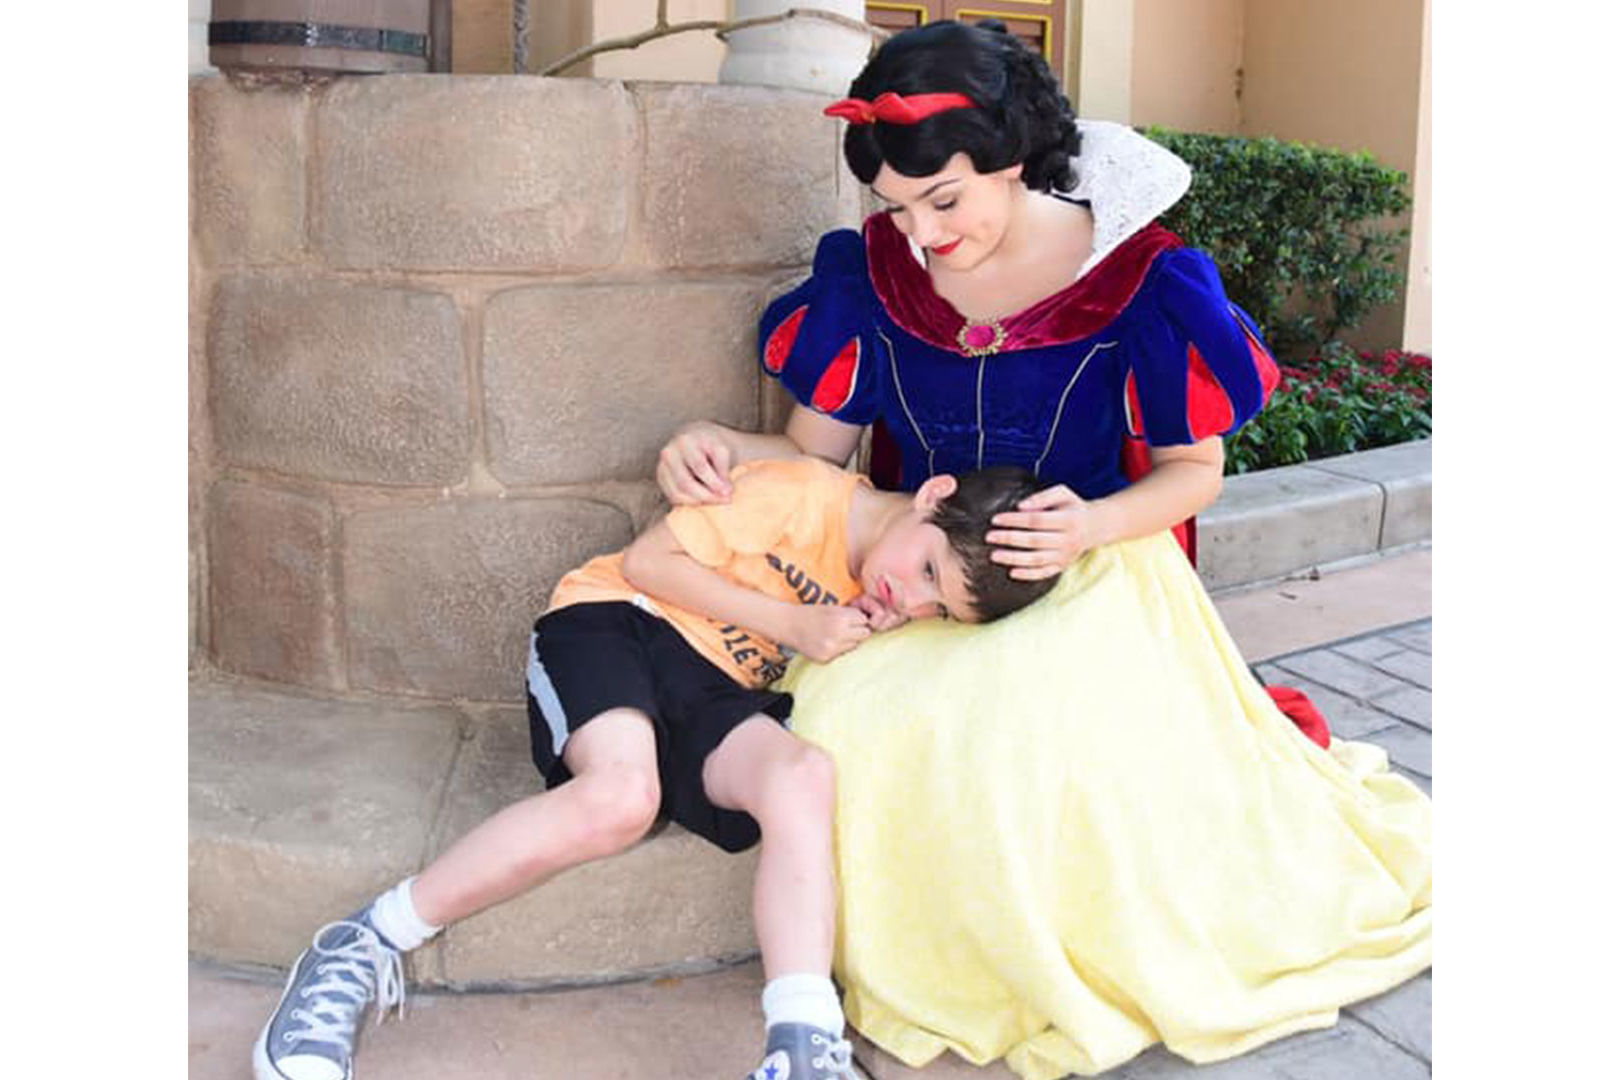 Snow White Lovingly Soothes 6-Year-Old Boy with Autism During Disney World Meltdown